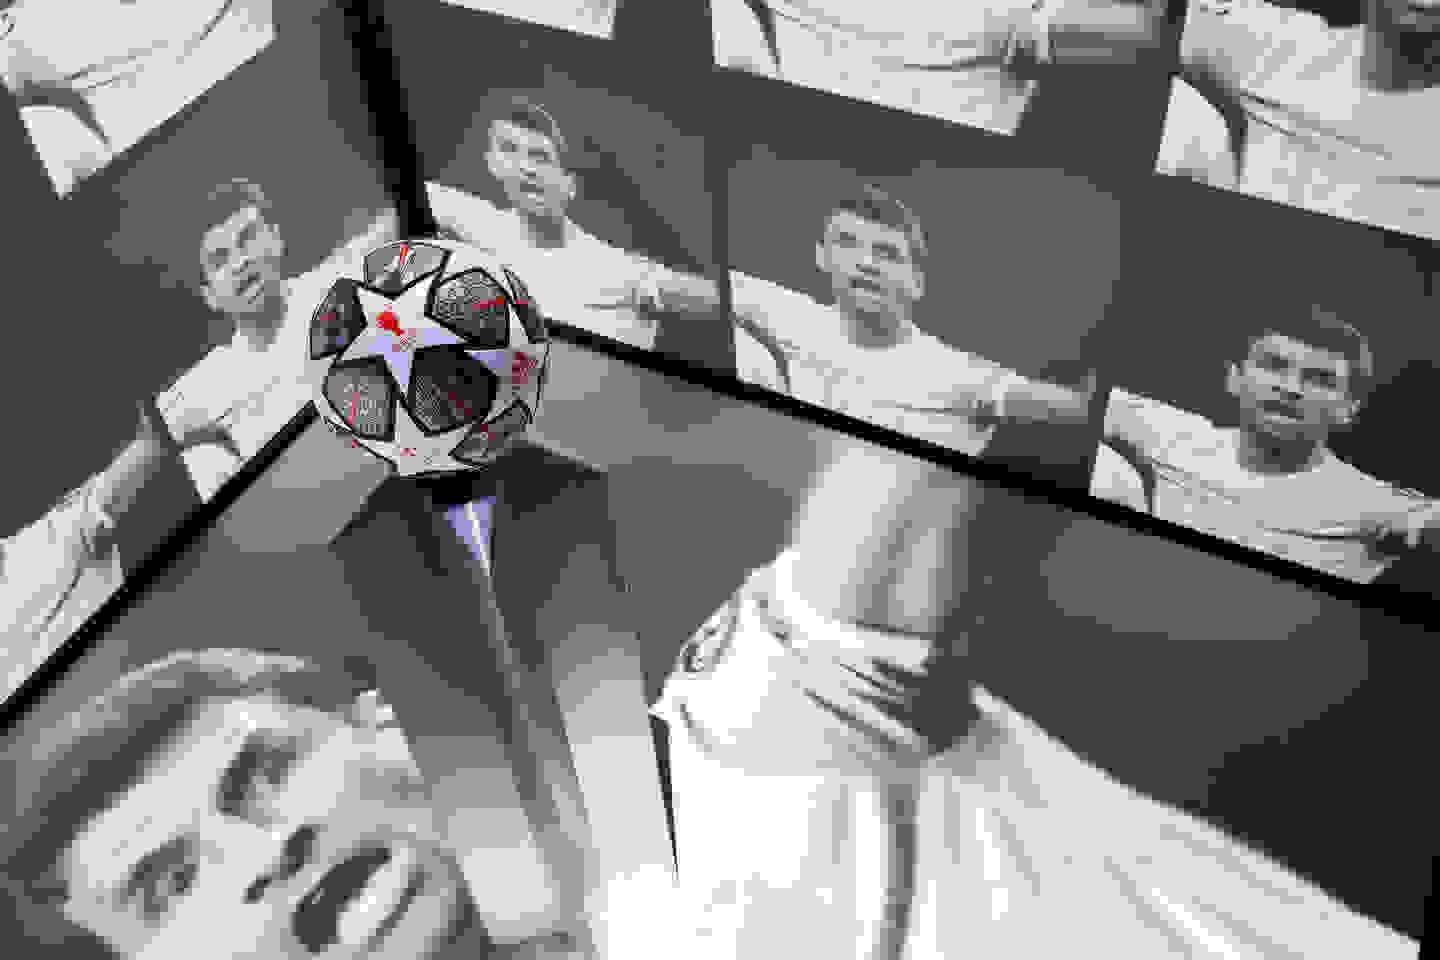 ball on plinth surrounded by screens featuring muller